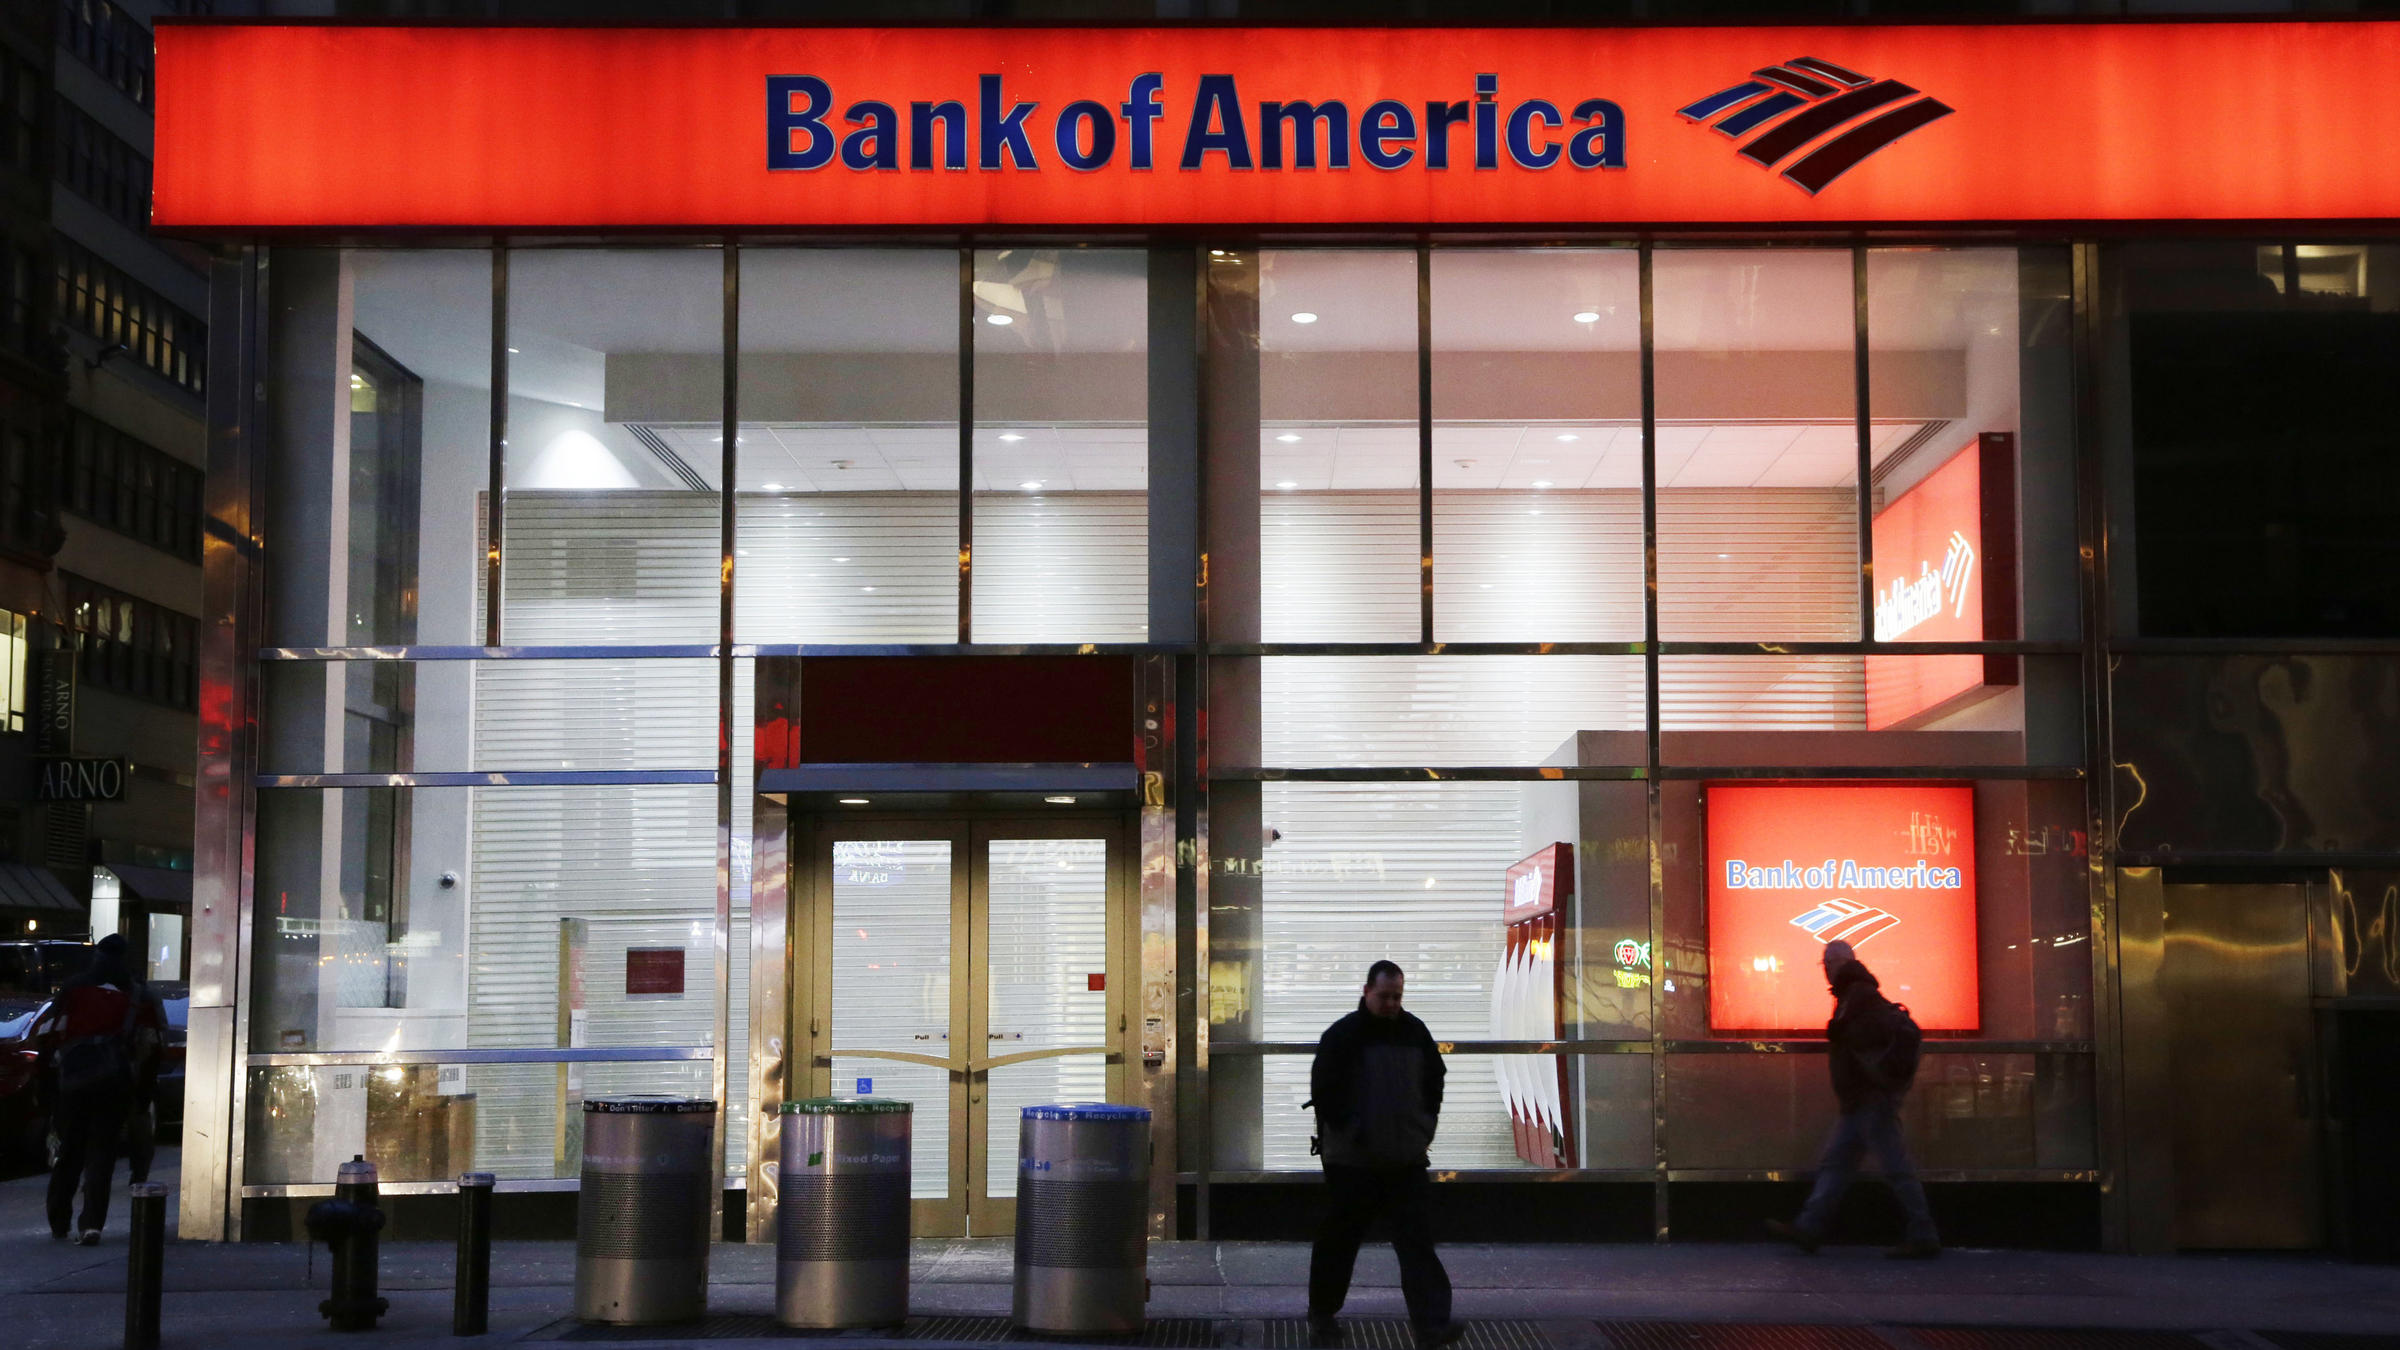 Bank of America will increase its hourly wage